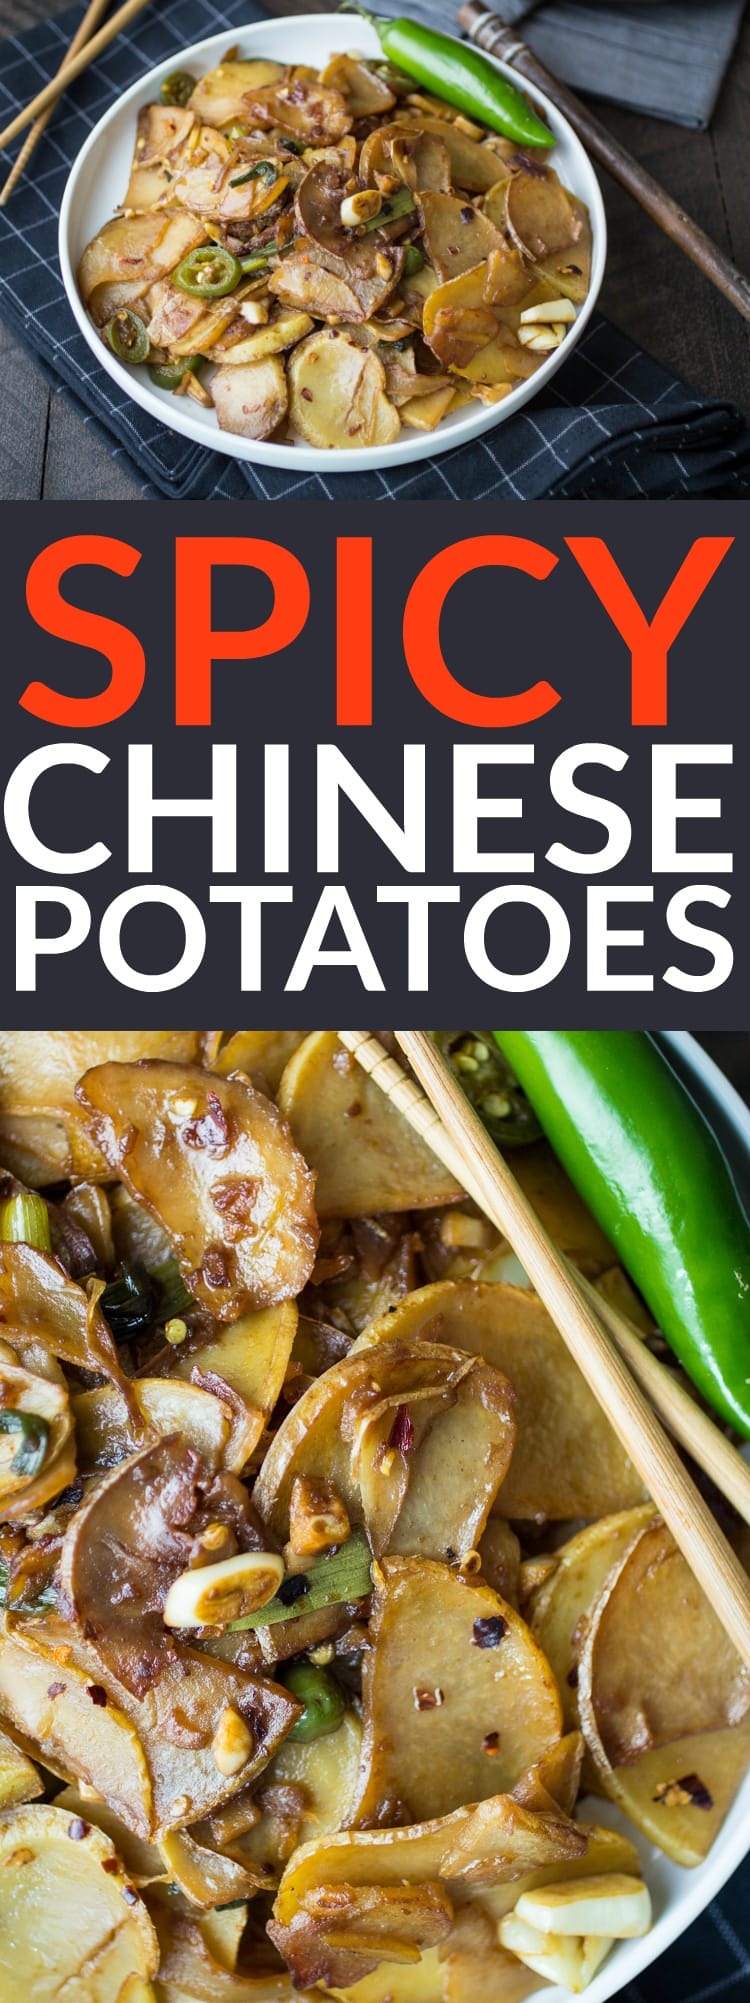 Spicy Chinese Potatoes are the perfect easy side dish for Chinese take-out night!